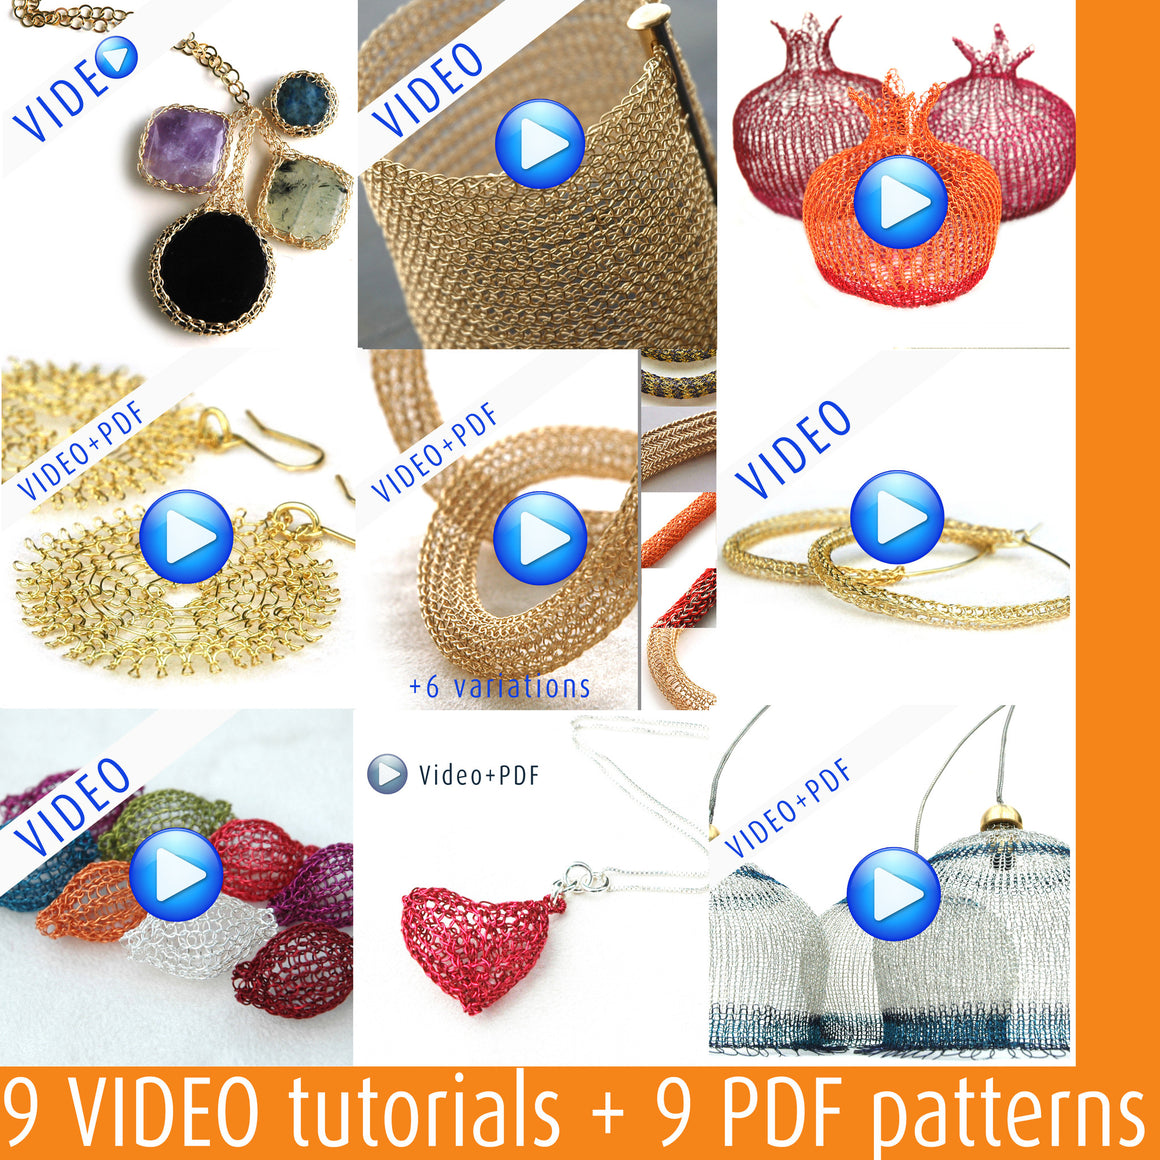 video tutorials and wire crochet patterns PDF  combination - Yooladesign